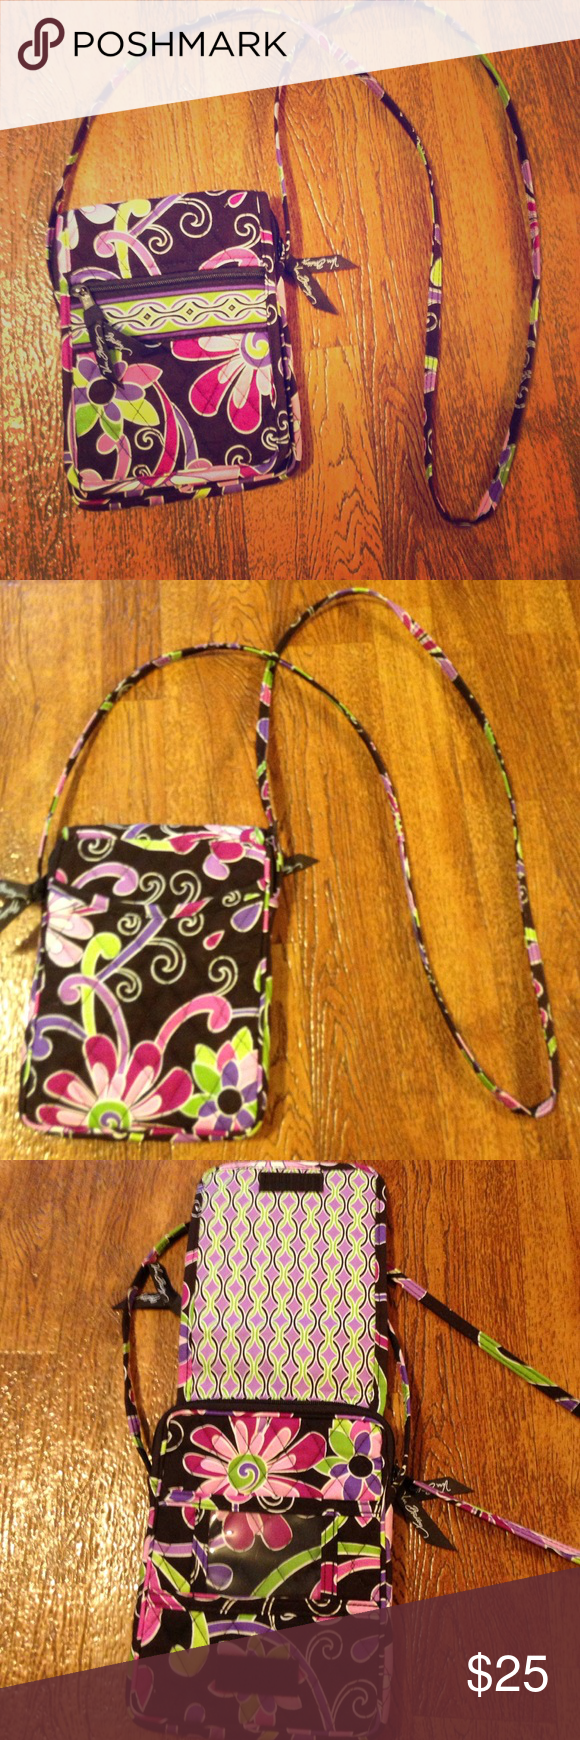 Vera Bradley Mini Hipster This crossbody is perfect for a day filled with shopping! It's small and convenient and keeps all the necessities! It has a small zipper pocket on the front and a sleeve on the back. The flap on the front is Velcro and it has a clear slot for an ID. The inner part has a zipper closure and it has 4 card slots on the inside! Used a few times but in great condition! Vera Bradley Bags Crossbody Bags